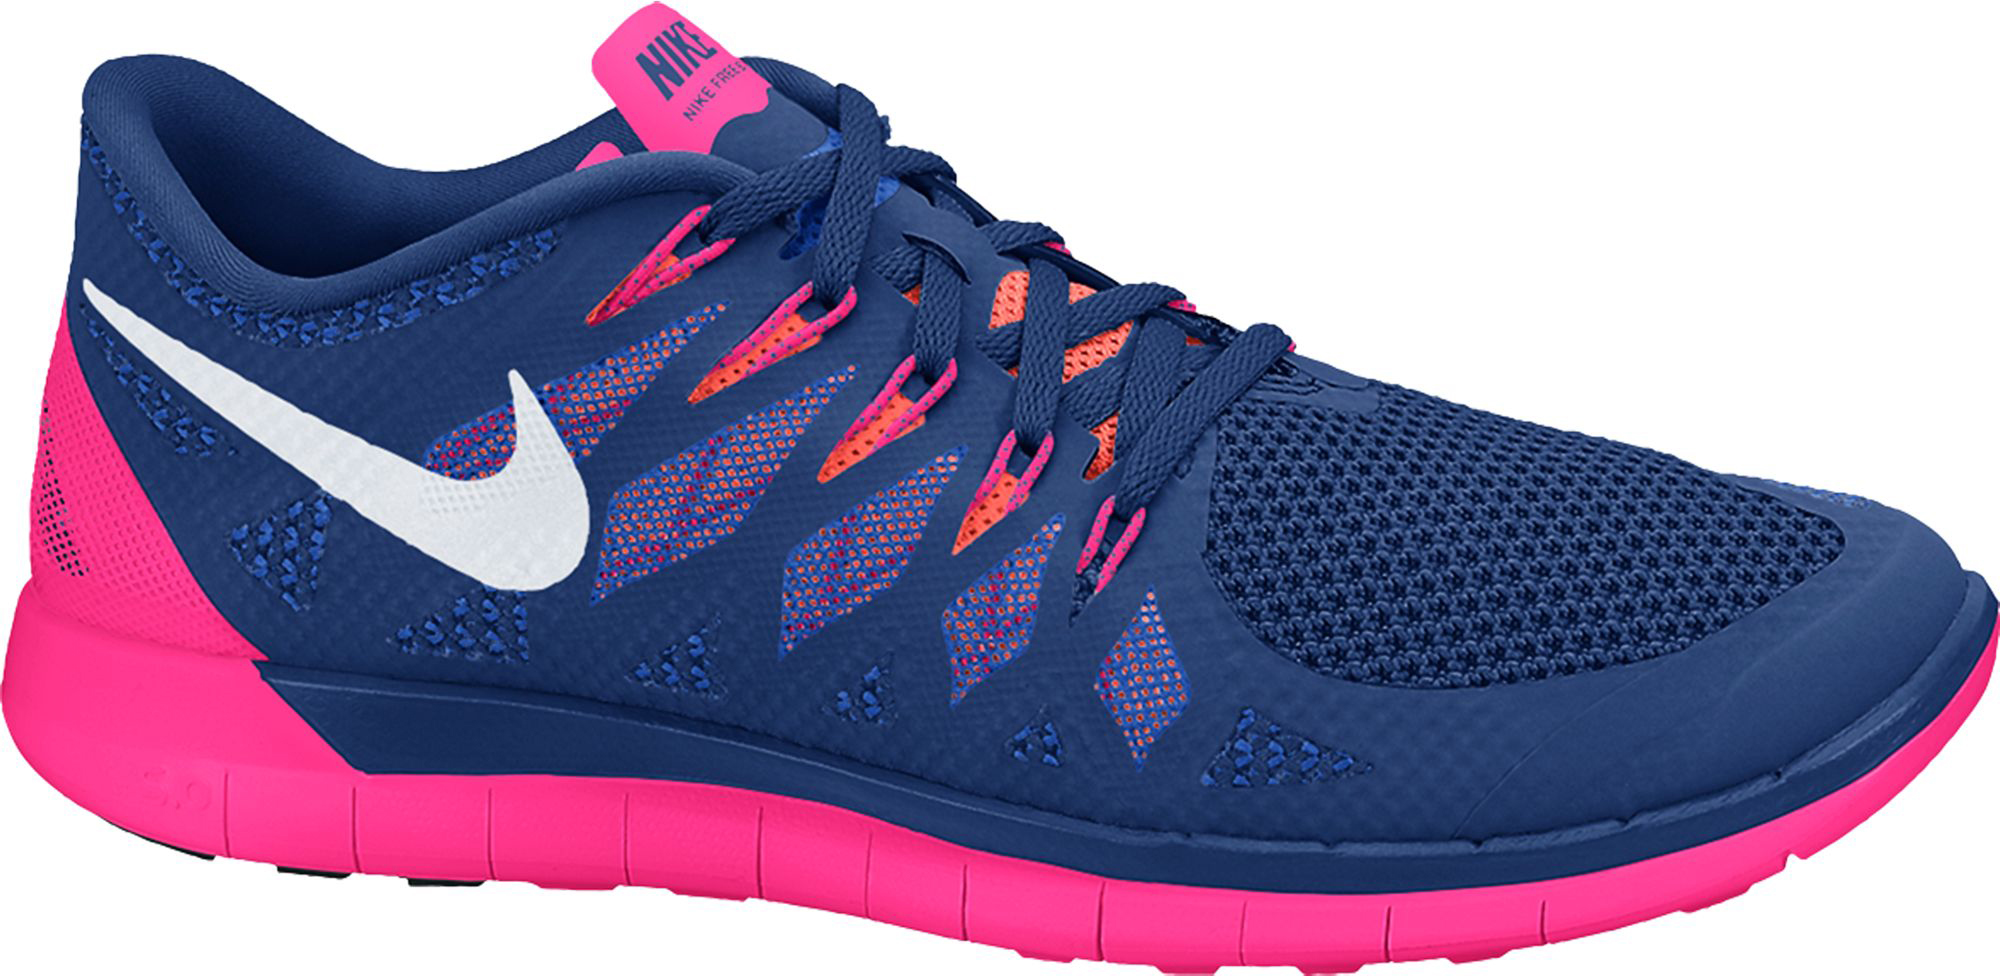 nike free 5.0 14 running shoes - fa14 eau